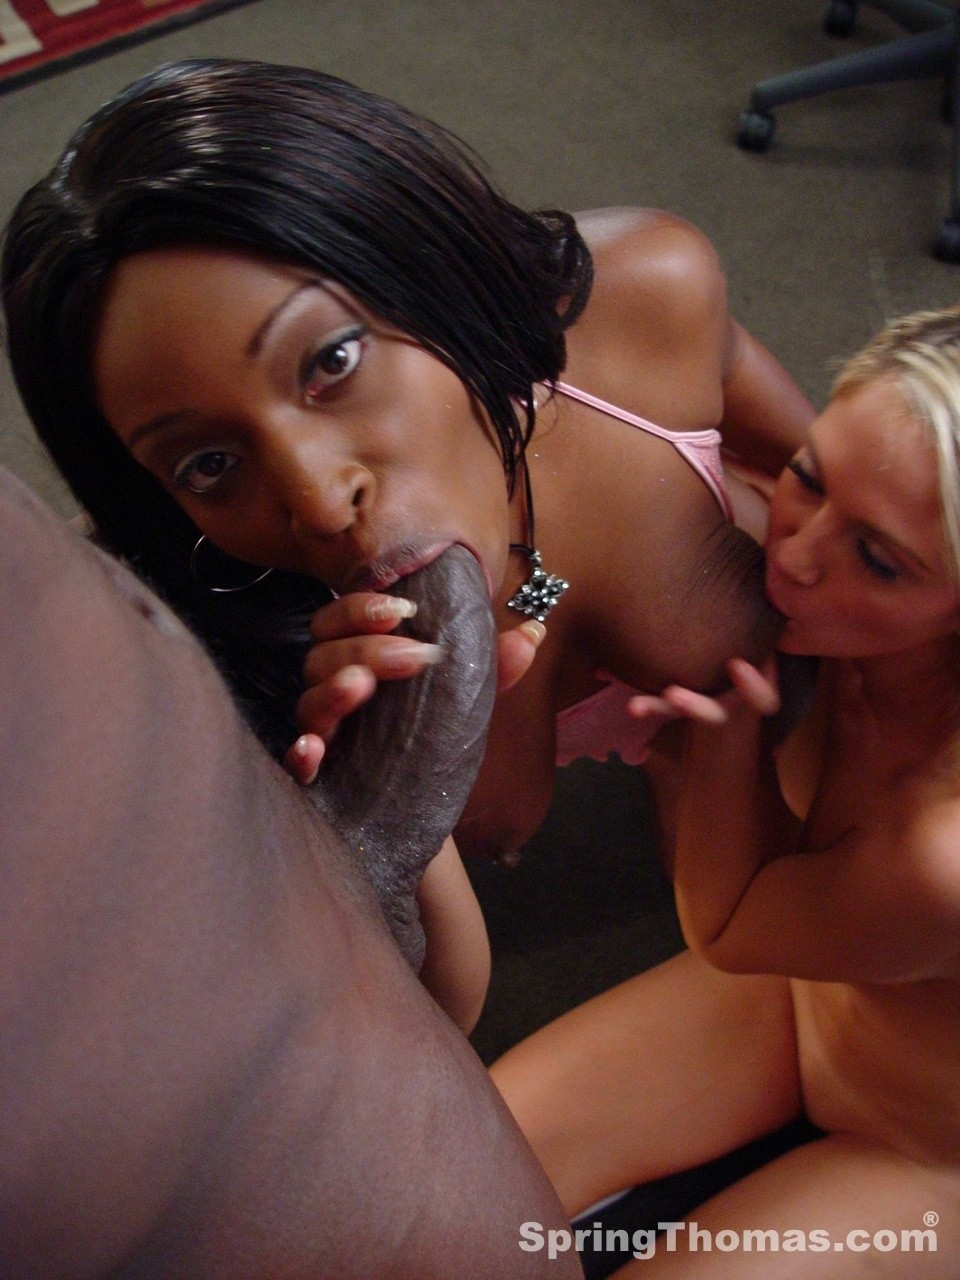 Black couple invites a white girl to join them for an interracial threesome